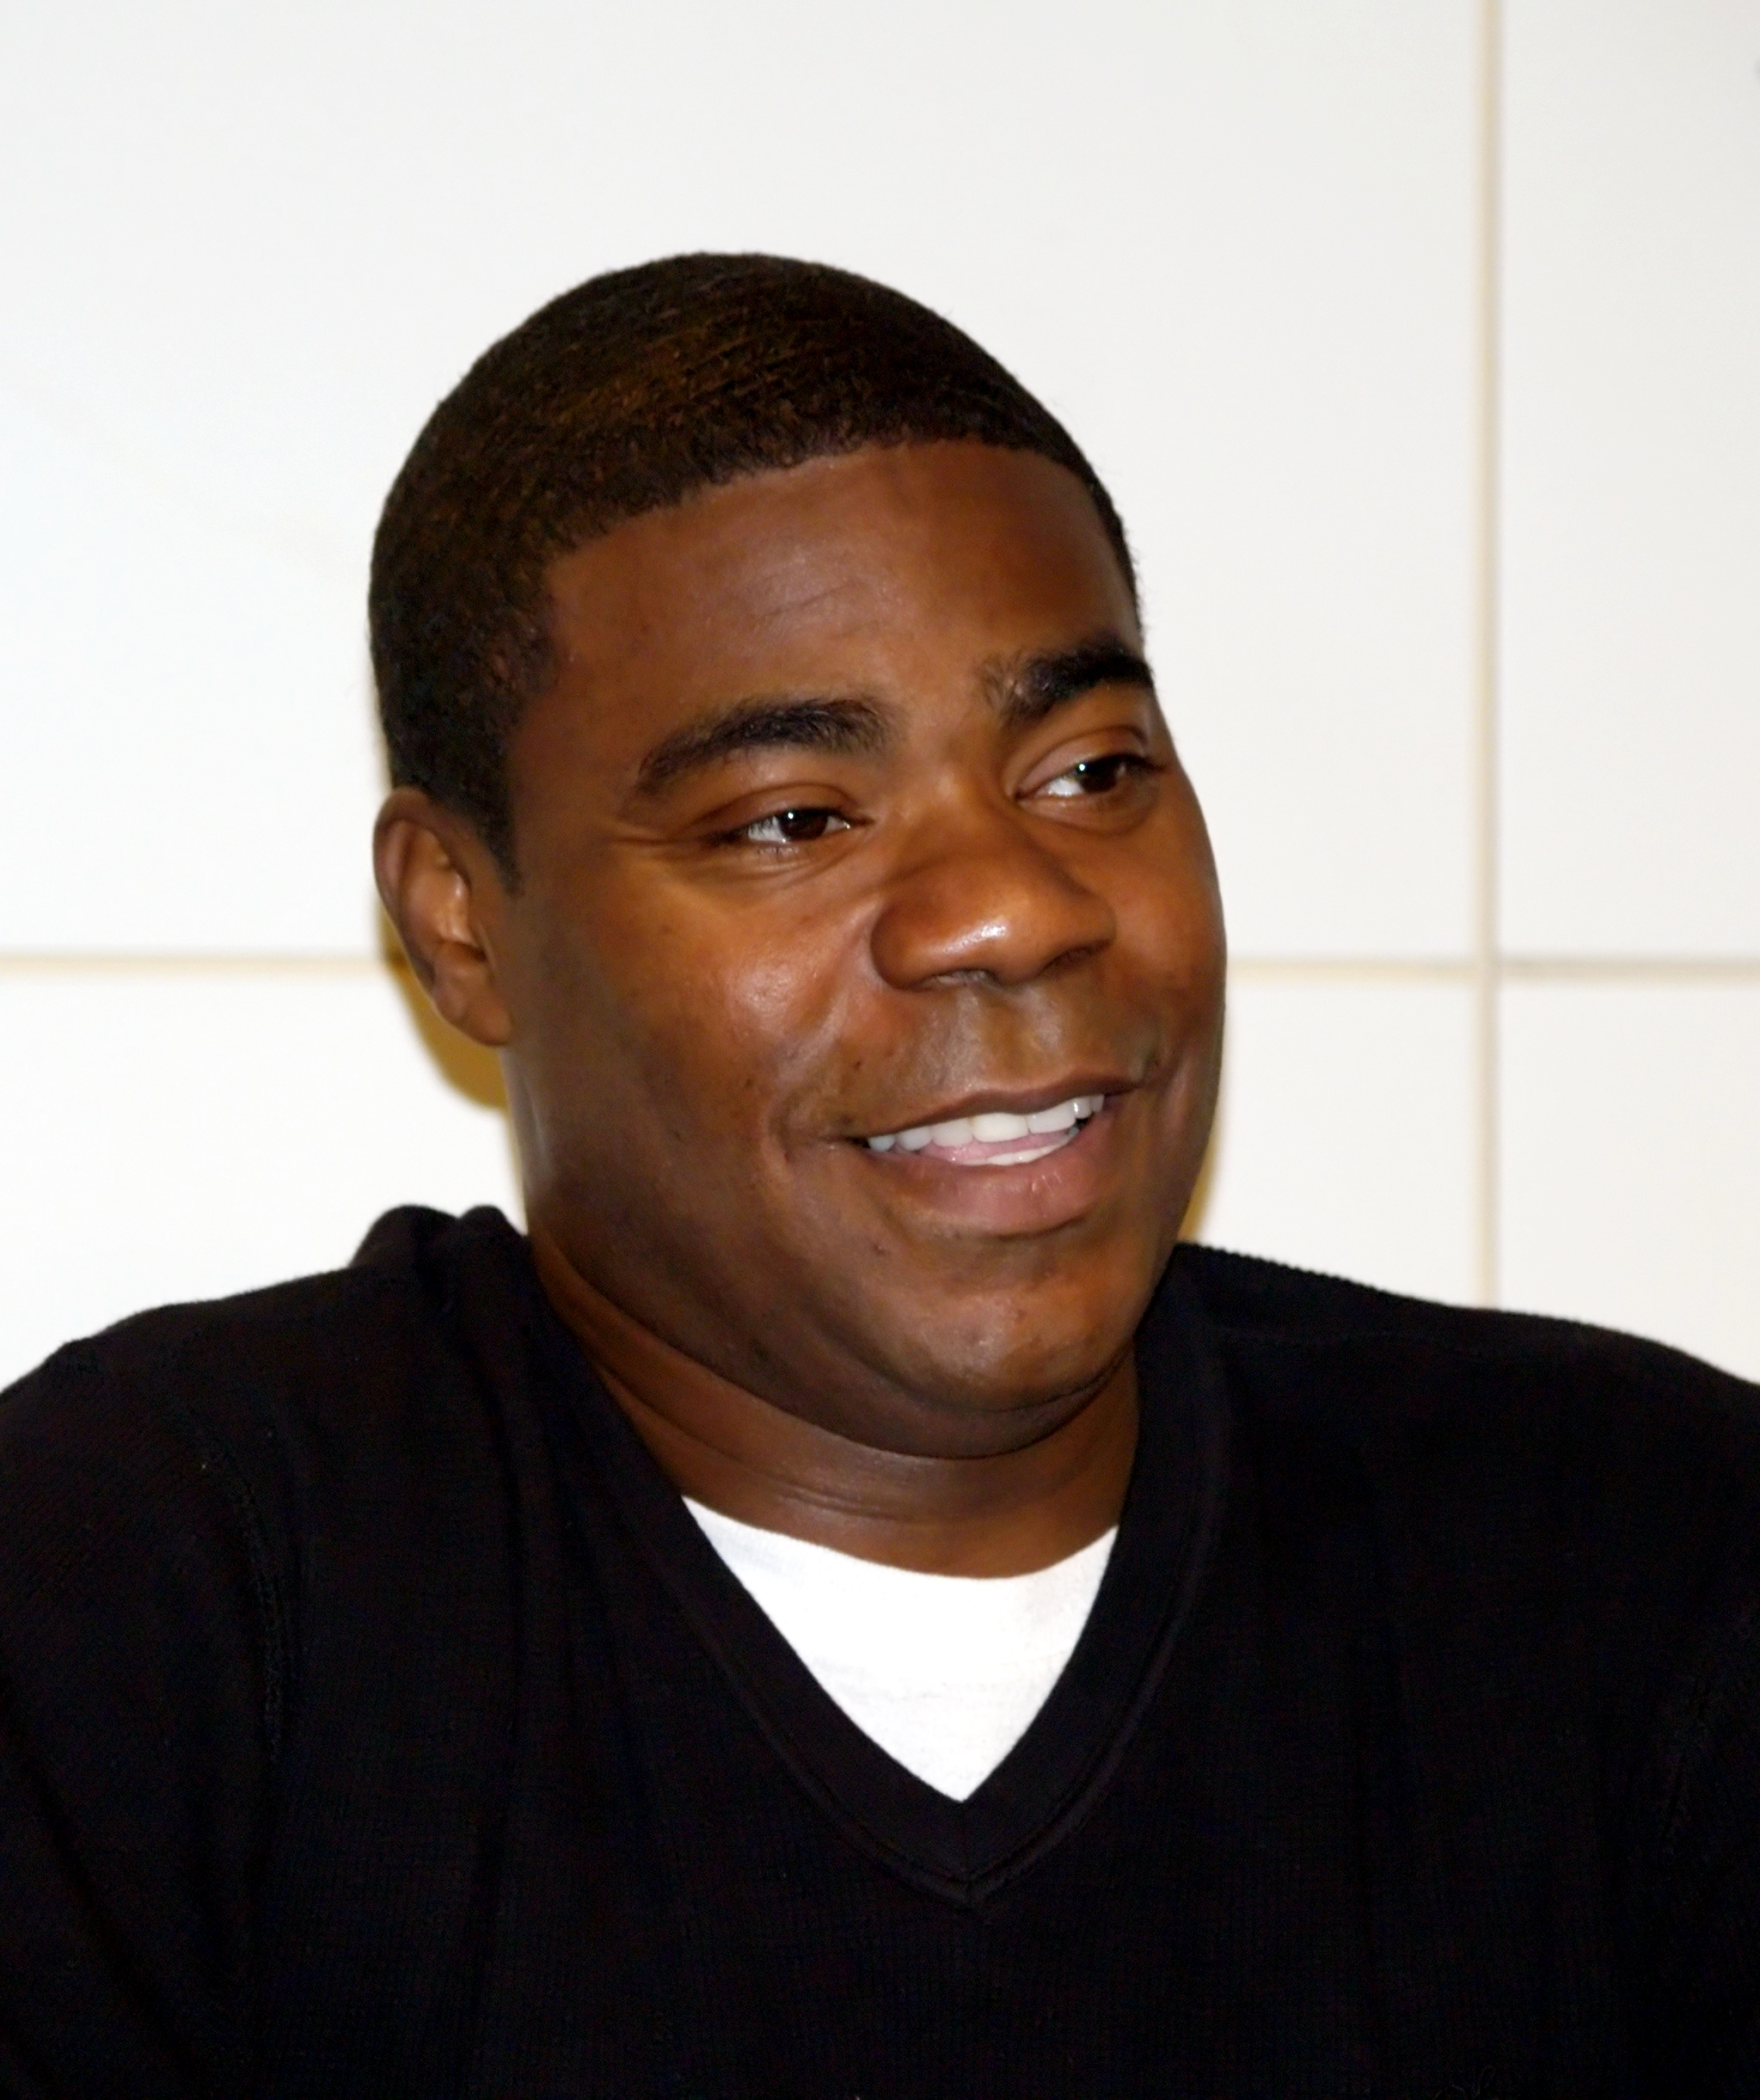 The 50-year old son of father James Morgan, Jr. and mother Alicia Warden Tracy Morgan in 2019 photo. Tracy Morgan earned a  million dollar salary - leaving the net worth at 18 million in 2019